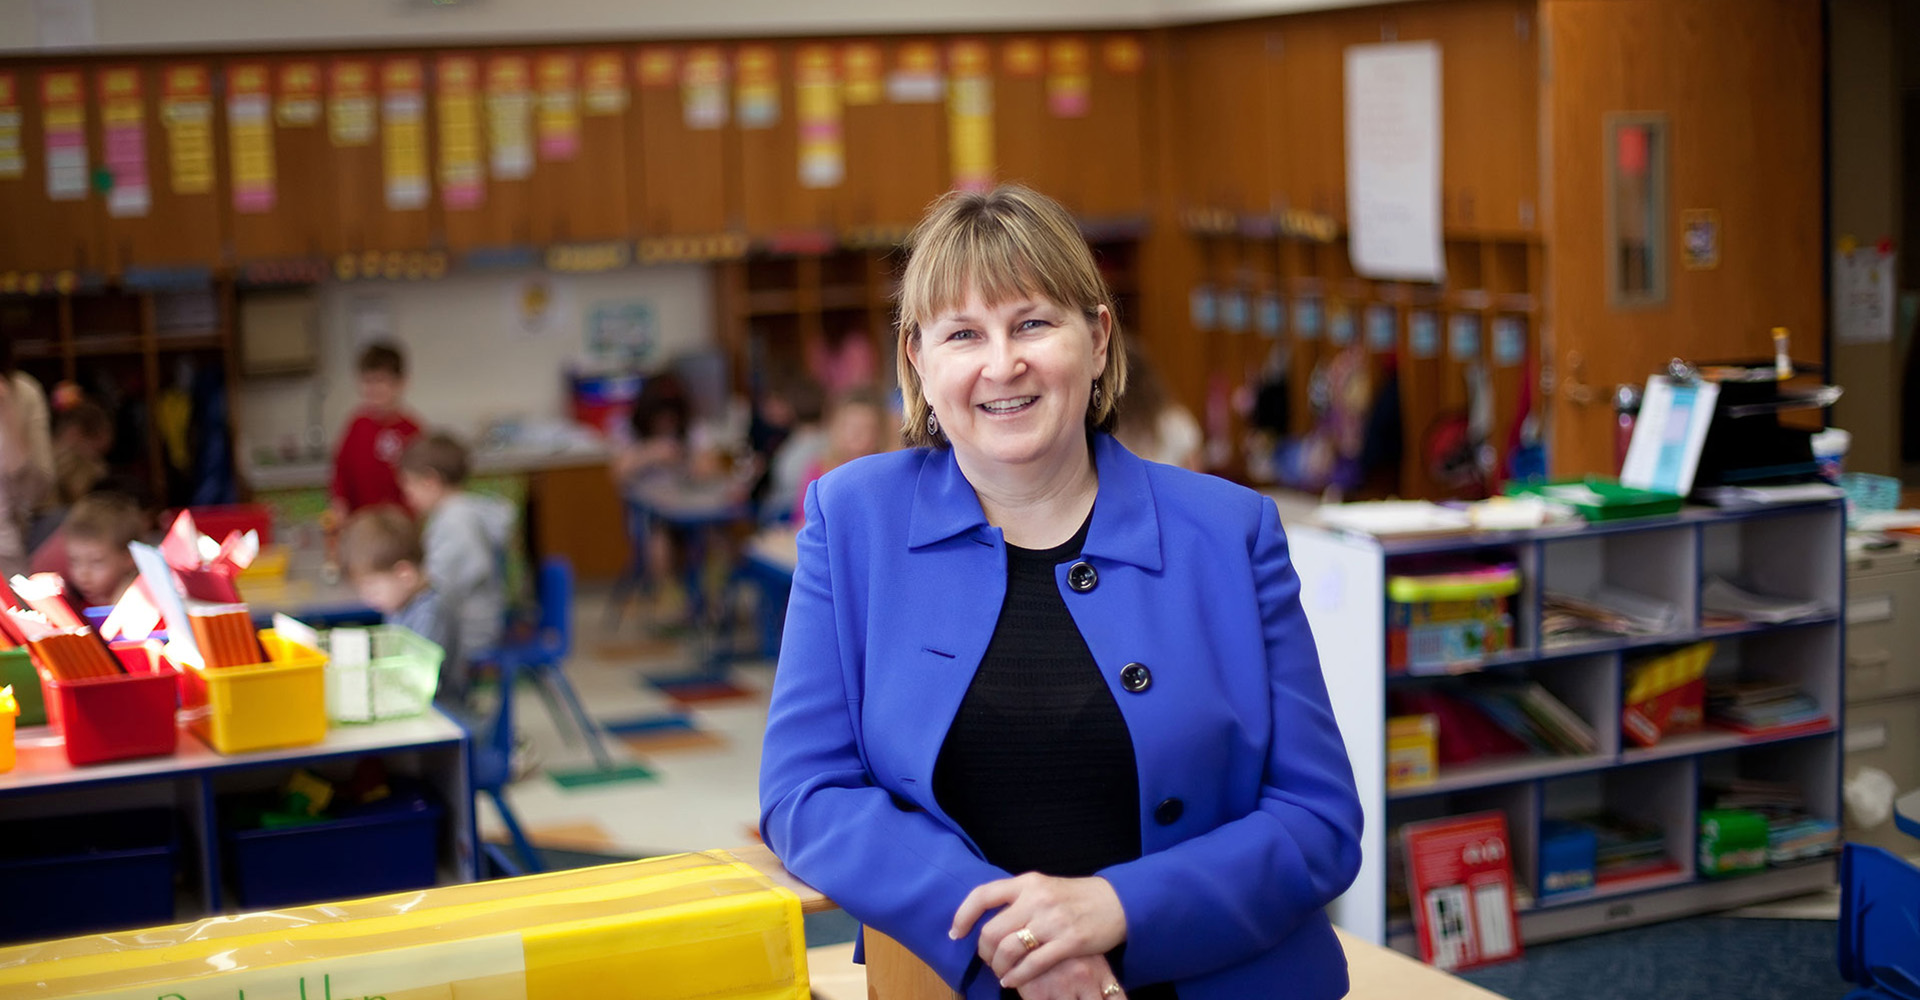 Female superintendent in a classroom